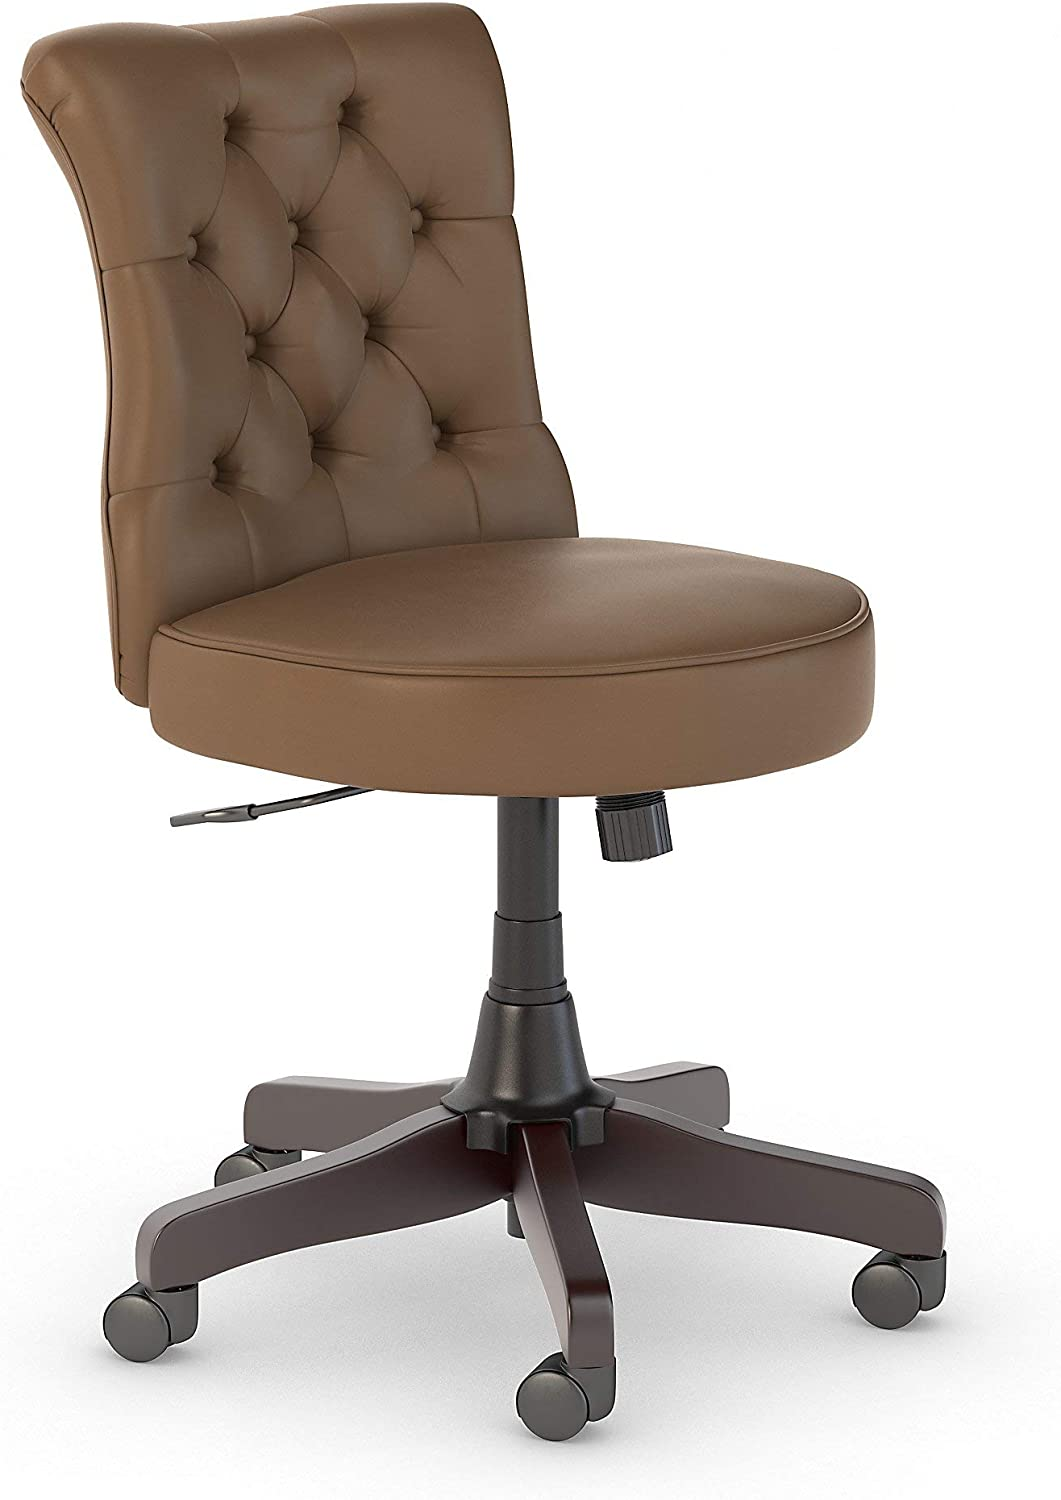 Bush Business Furniture Arden Lane Mid Back Tufted Office Chair, Saddle Tan Leather